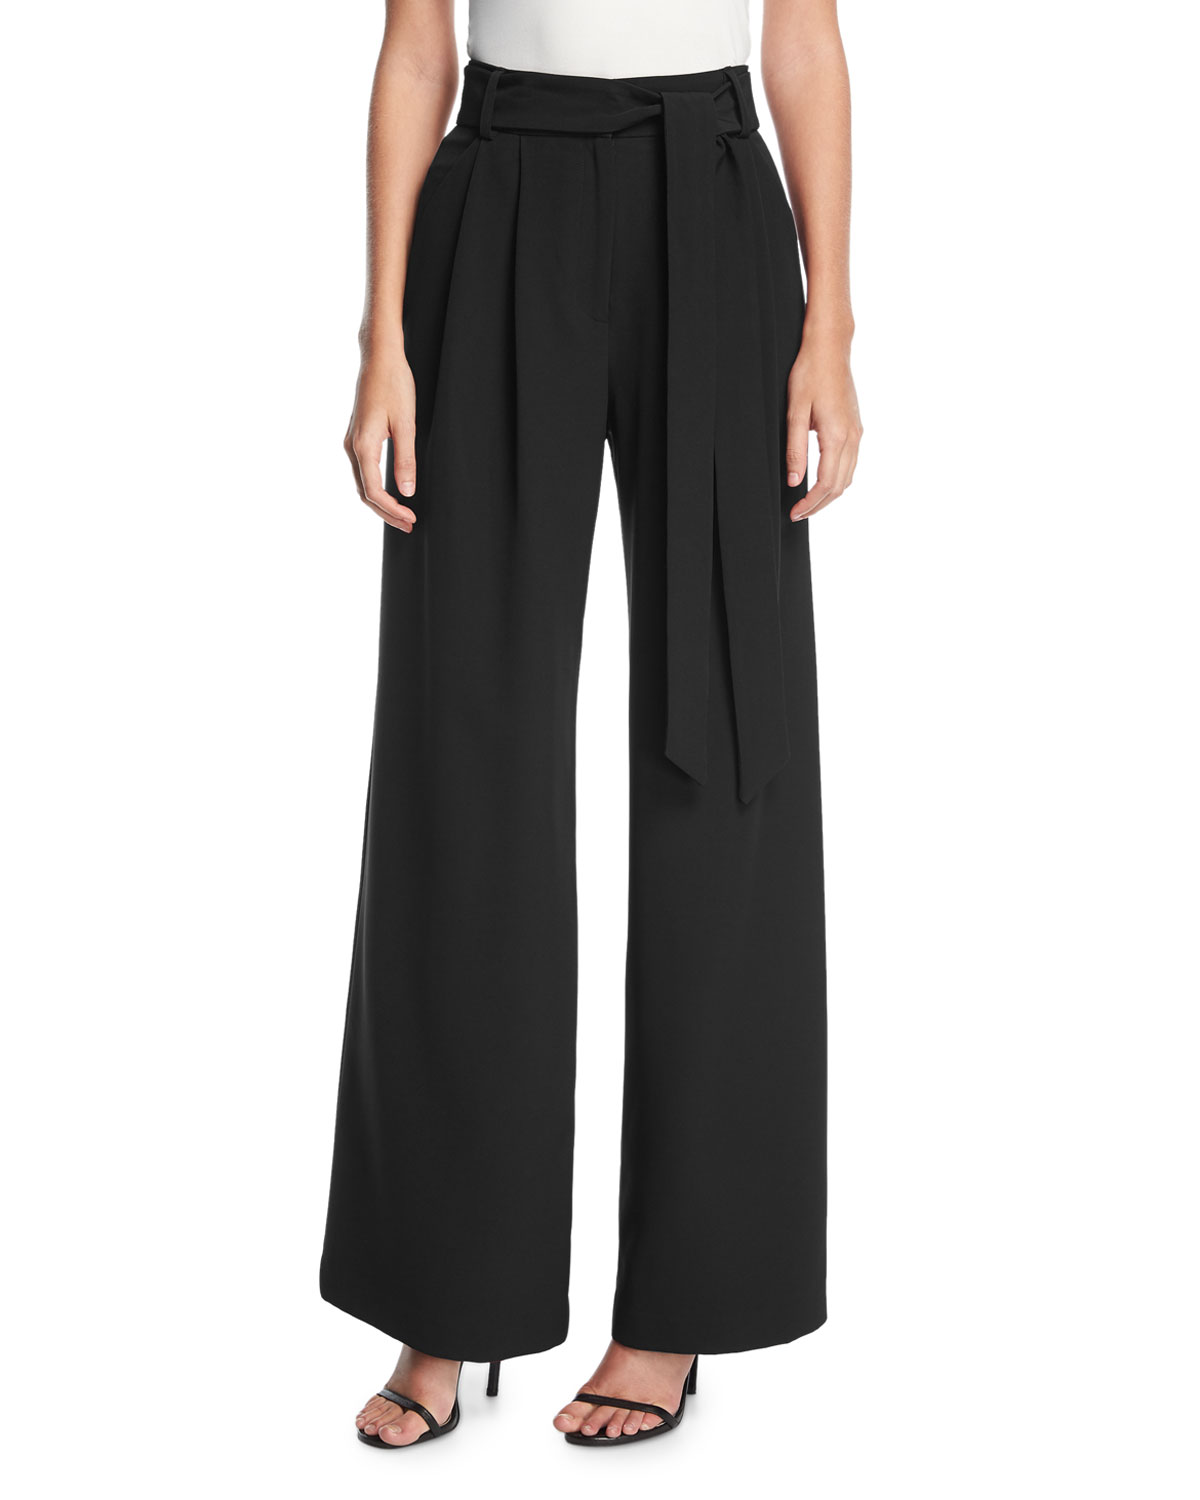 9aa1cc4a5f49 Quick Look. Milly · Natalie Tie-Waist Wide-Leg Pants